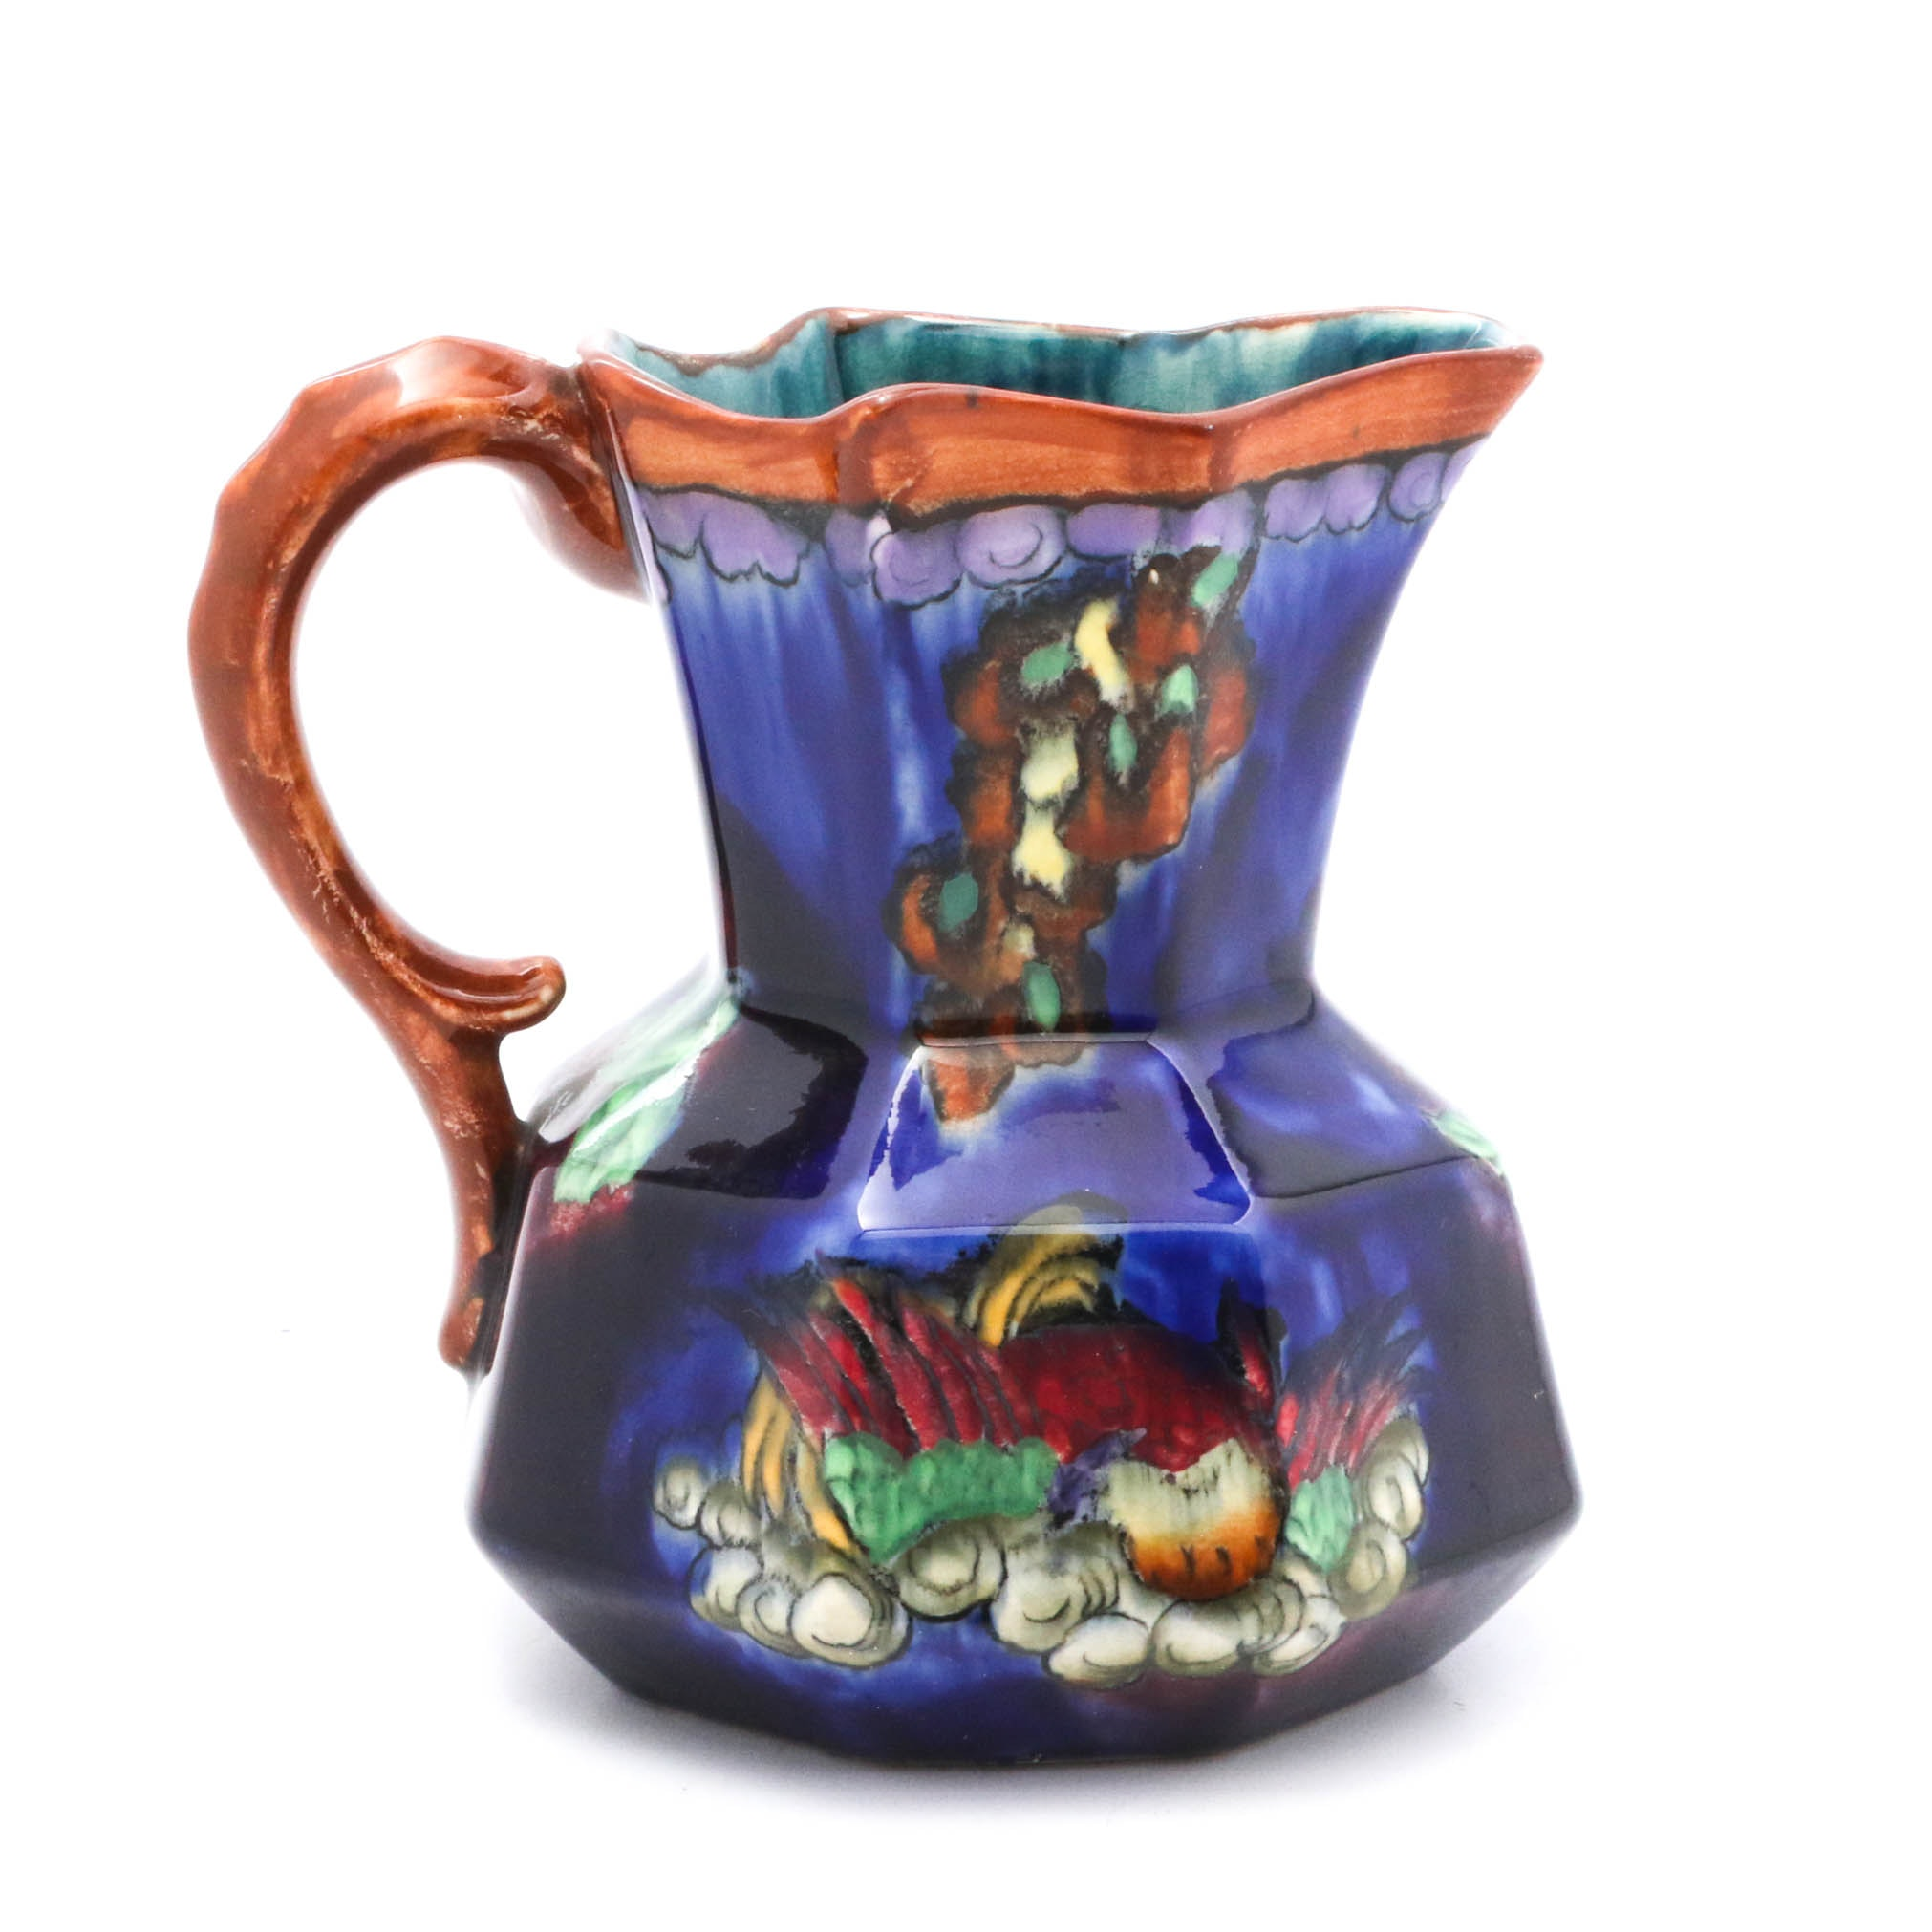 """Antique Signed Hancock & Sons """"Coronaware"""" Hand-Painted Ceramic Pitcher"""